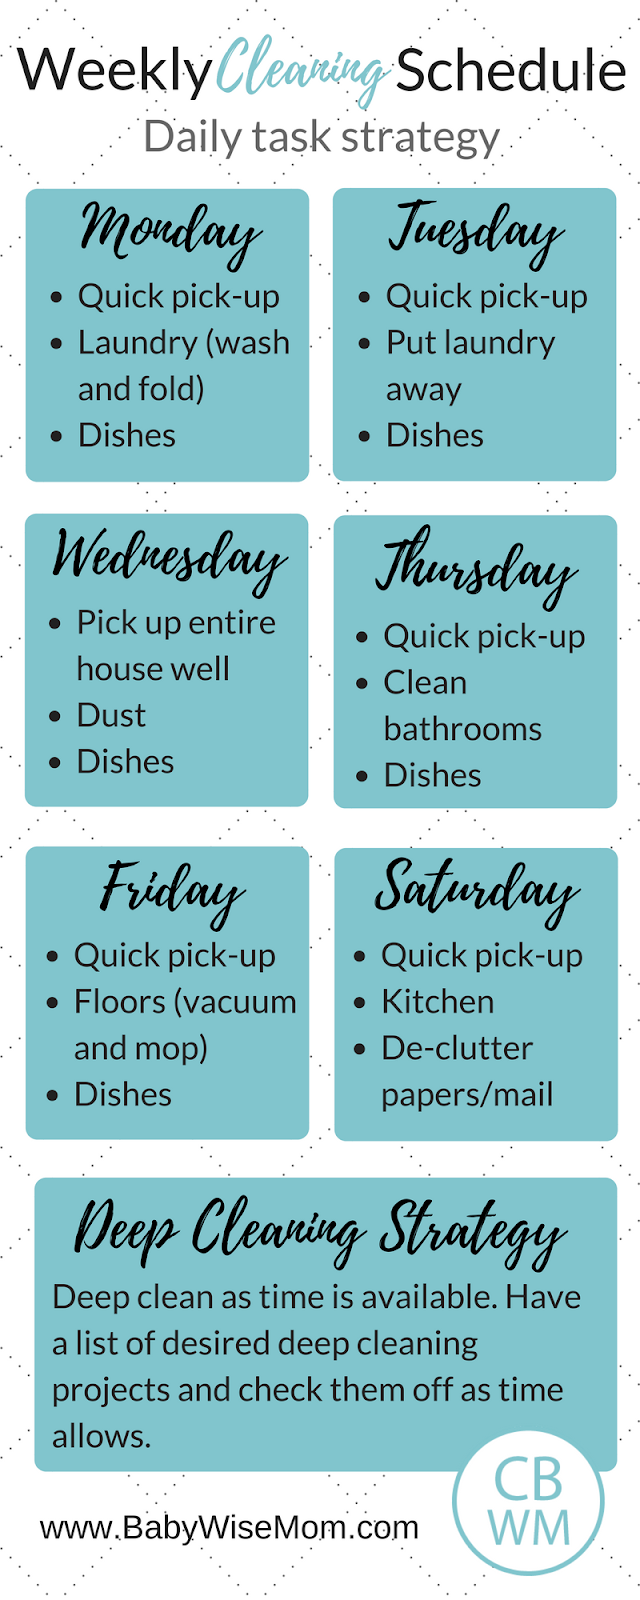 A Daily Task Cleaning Schedule